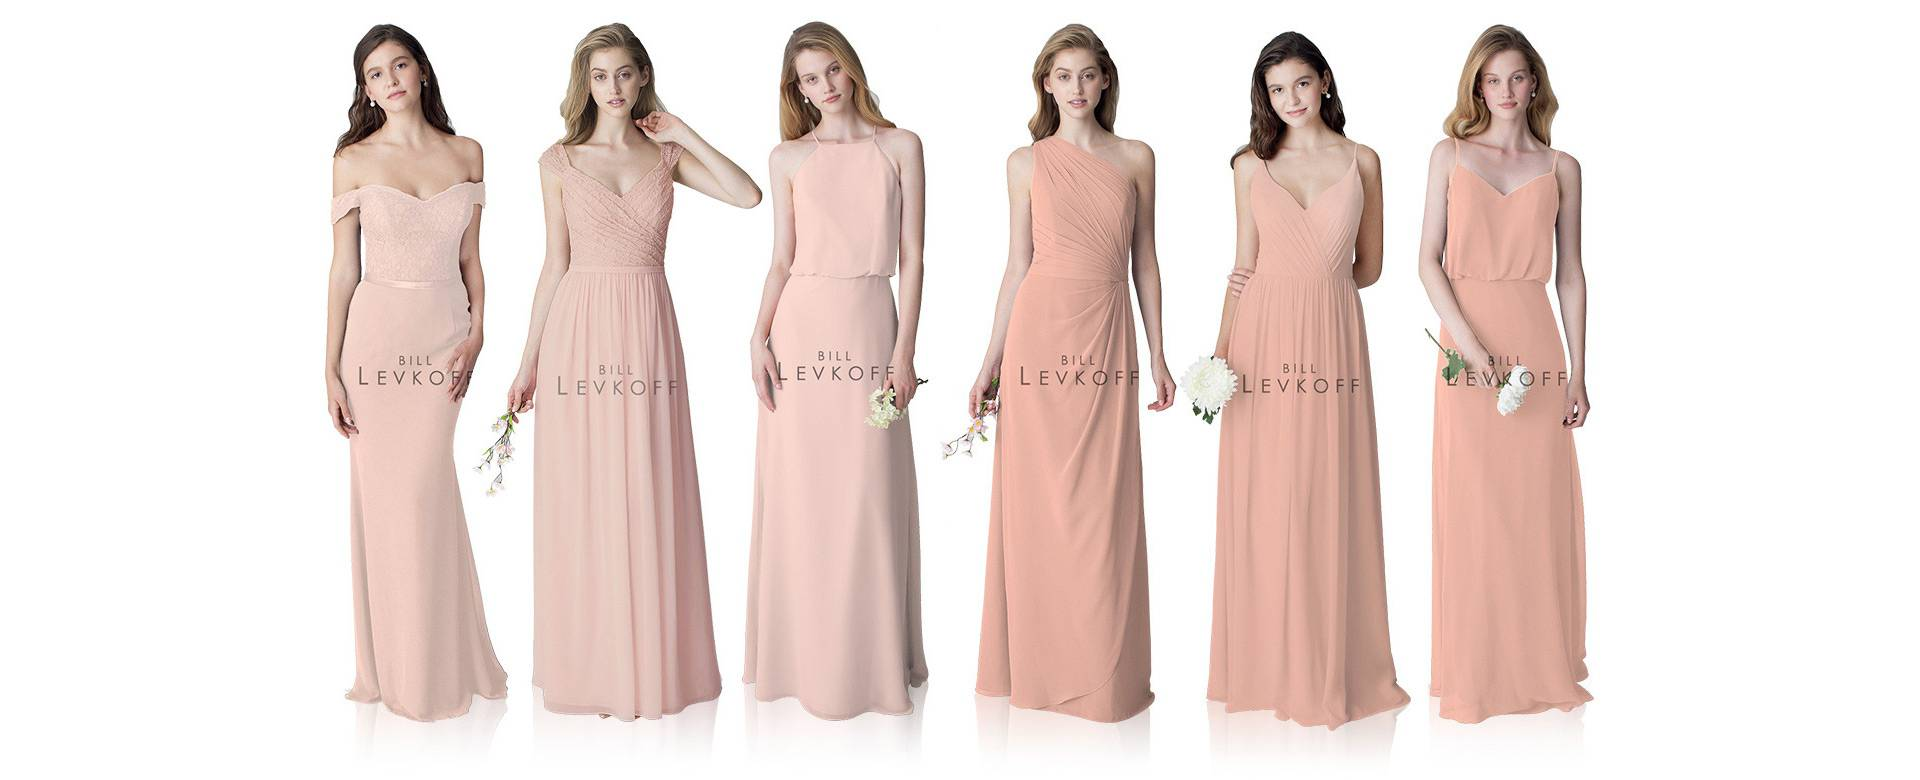 fall wedding bridesmaid dresses photo - 1